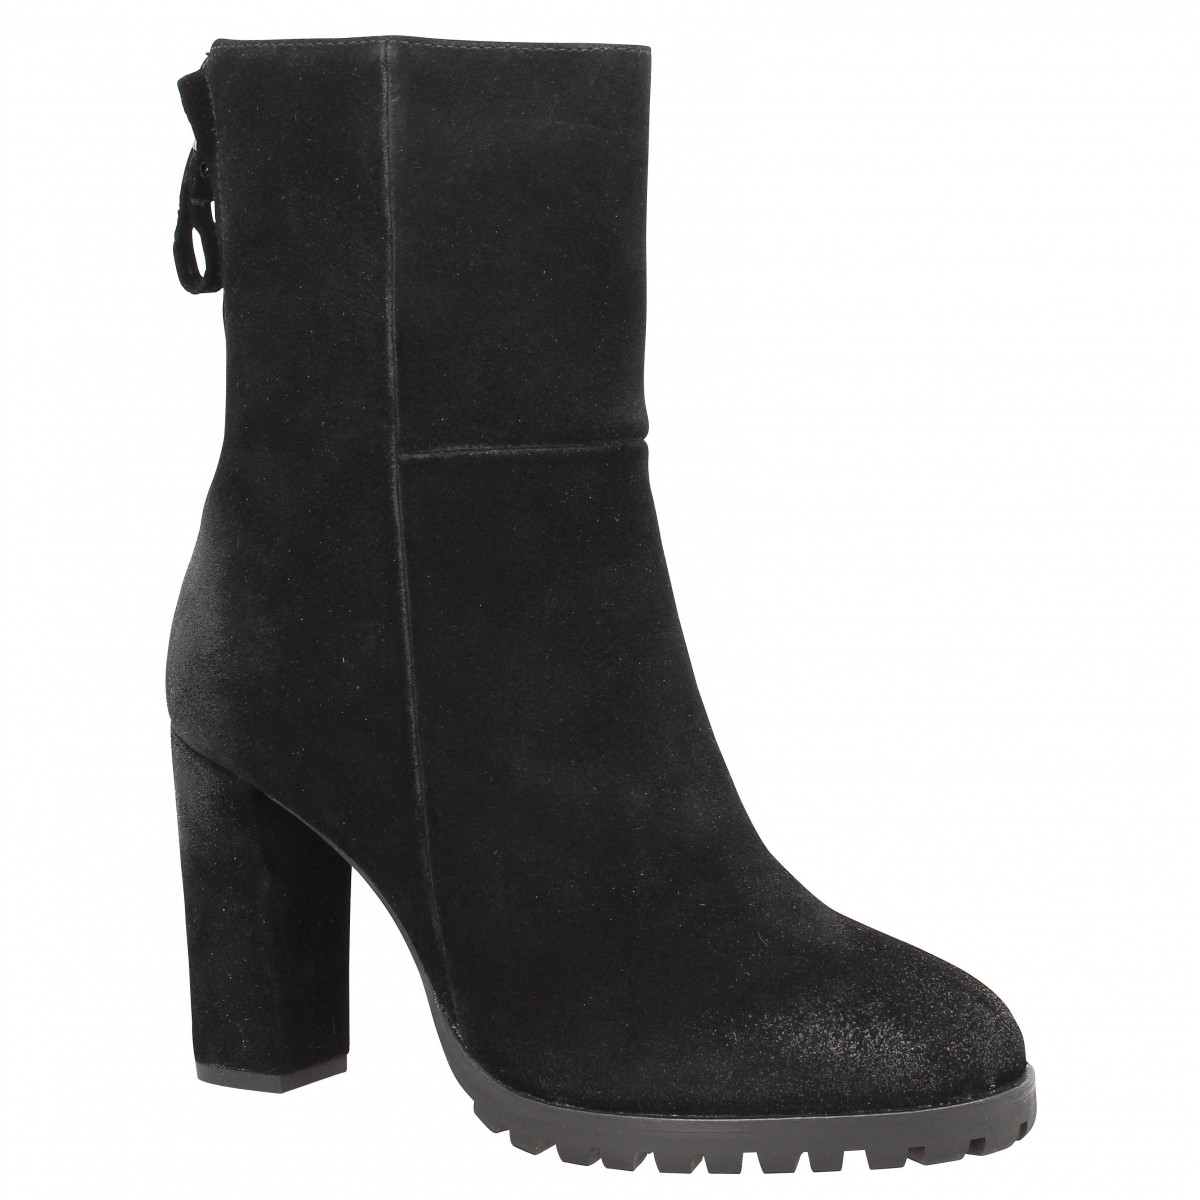 Bottines B PRIVATE 2107 Femme Noir